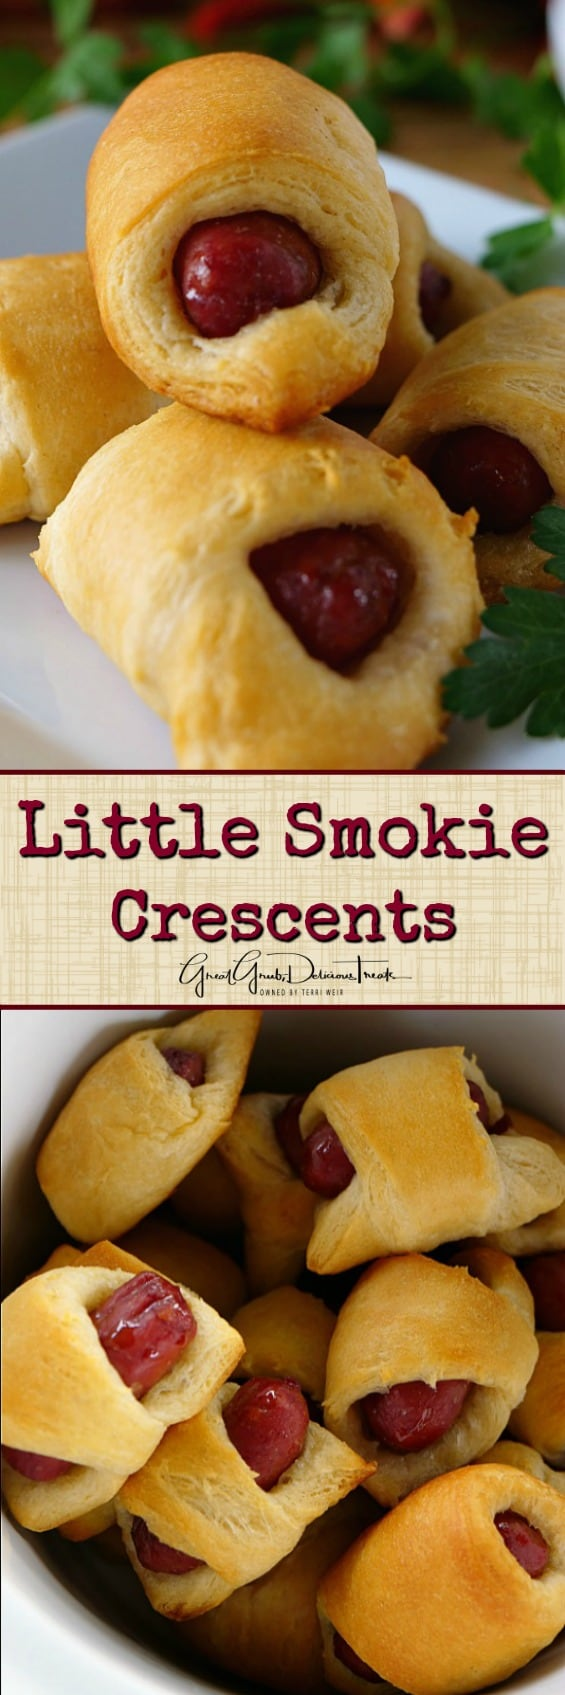 Little Smokie Crescents